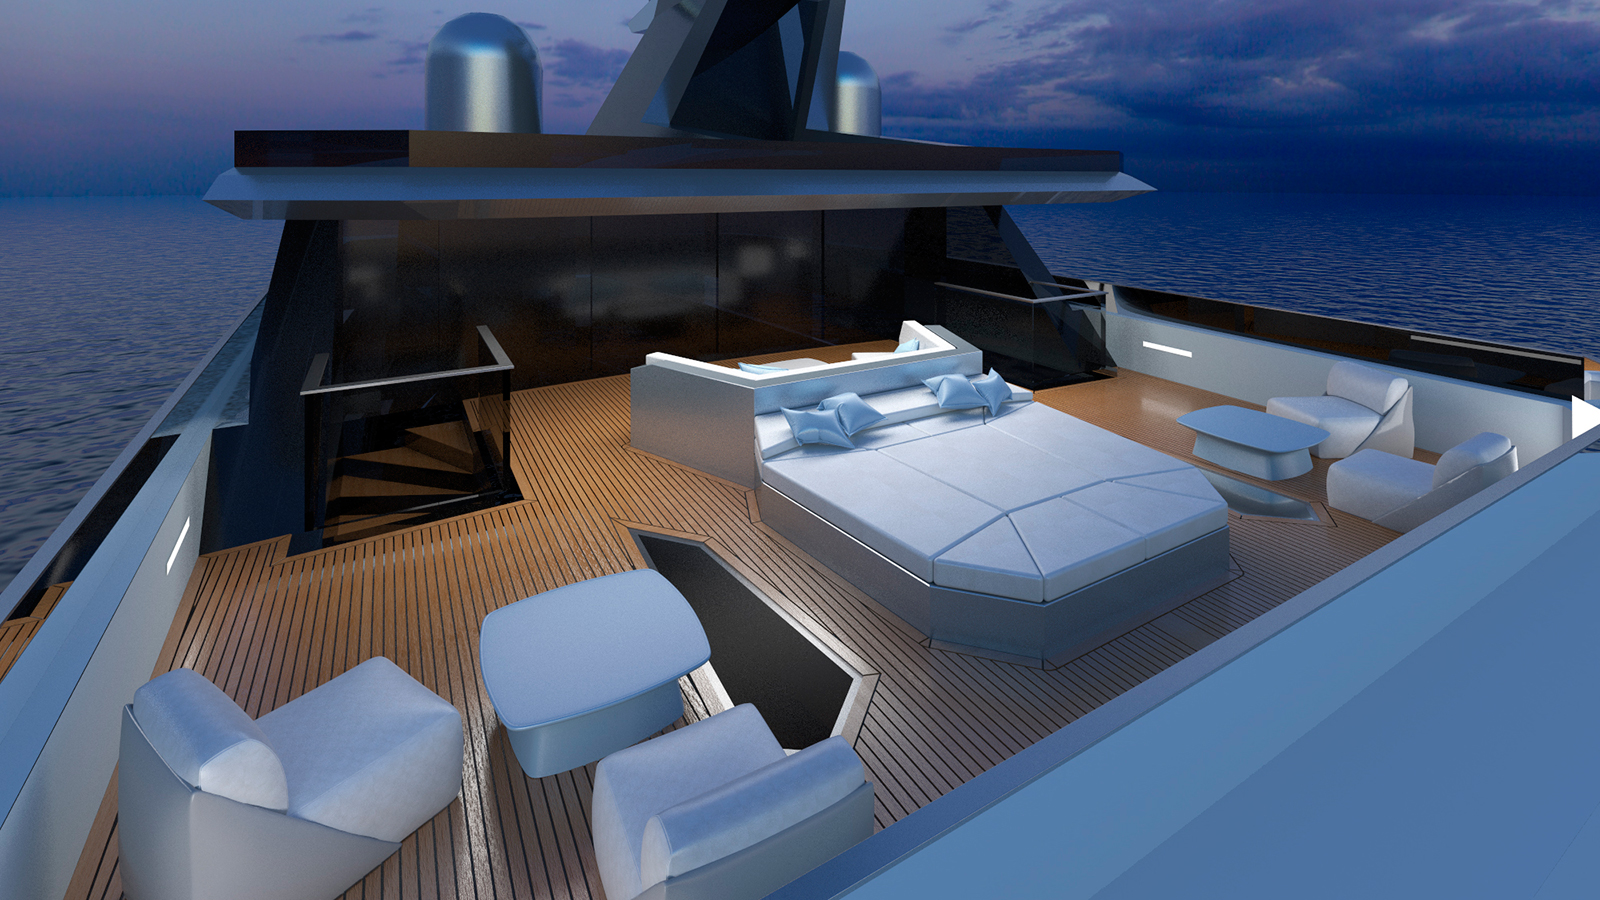 the-sundeck-of-the-80-metre-superyacht-concept-sunset